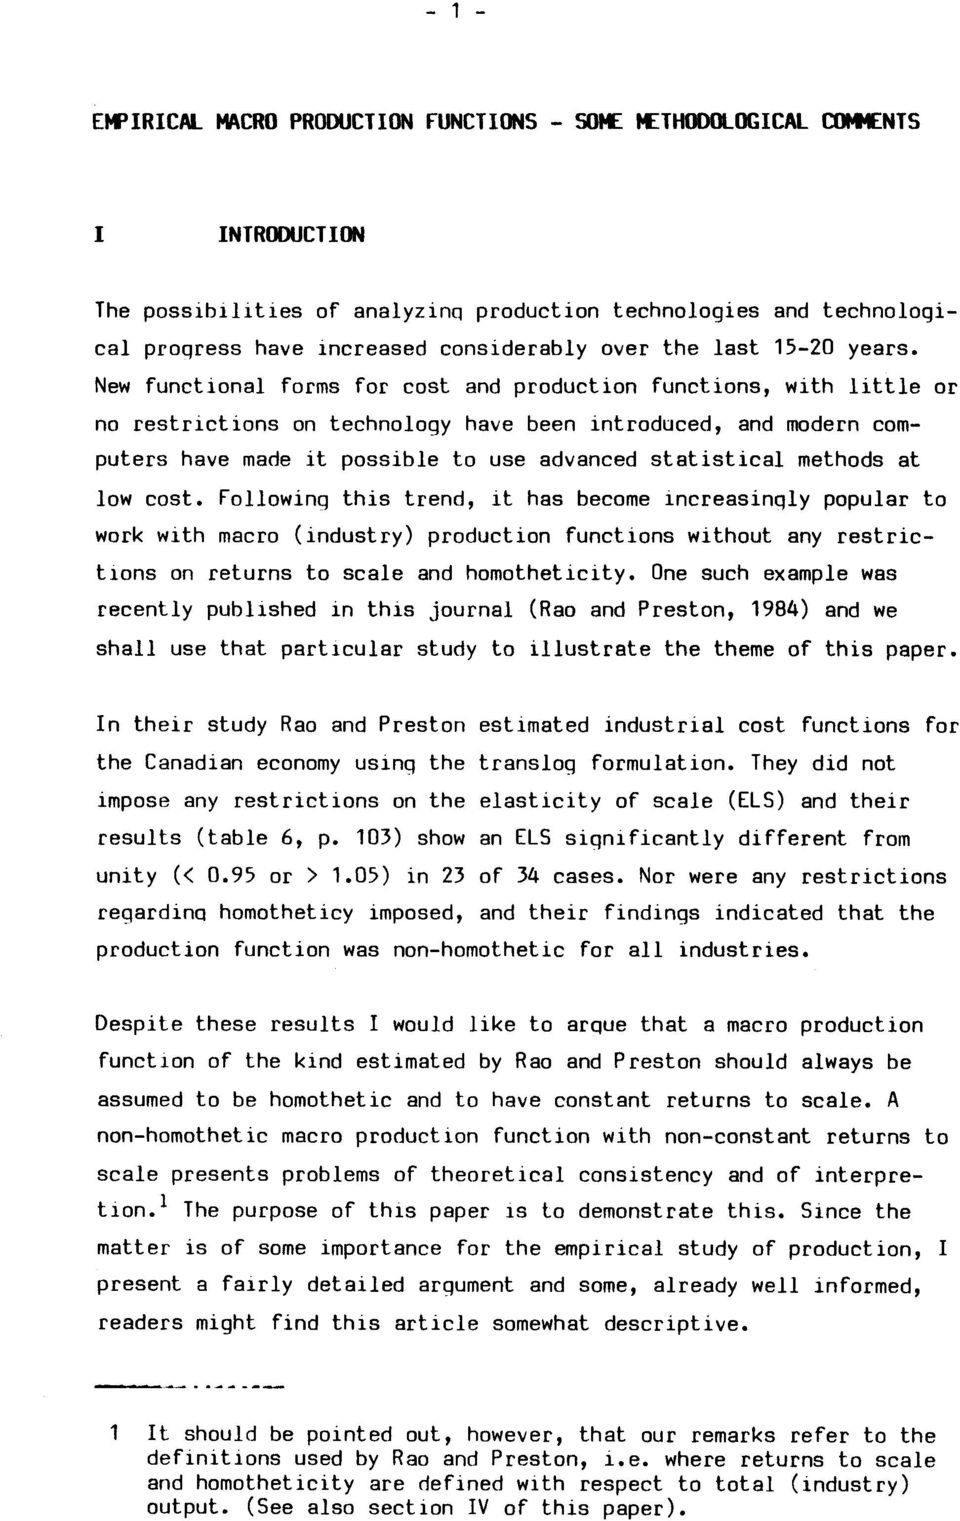 New functional forms for cost and production functions, with little or no restrictions on technology have been introduced, and modern computers have made it possible to use advanced statistical